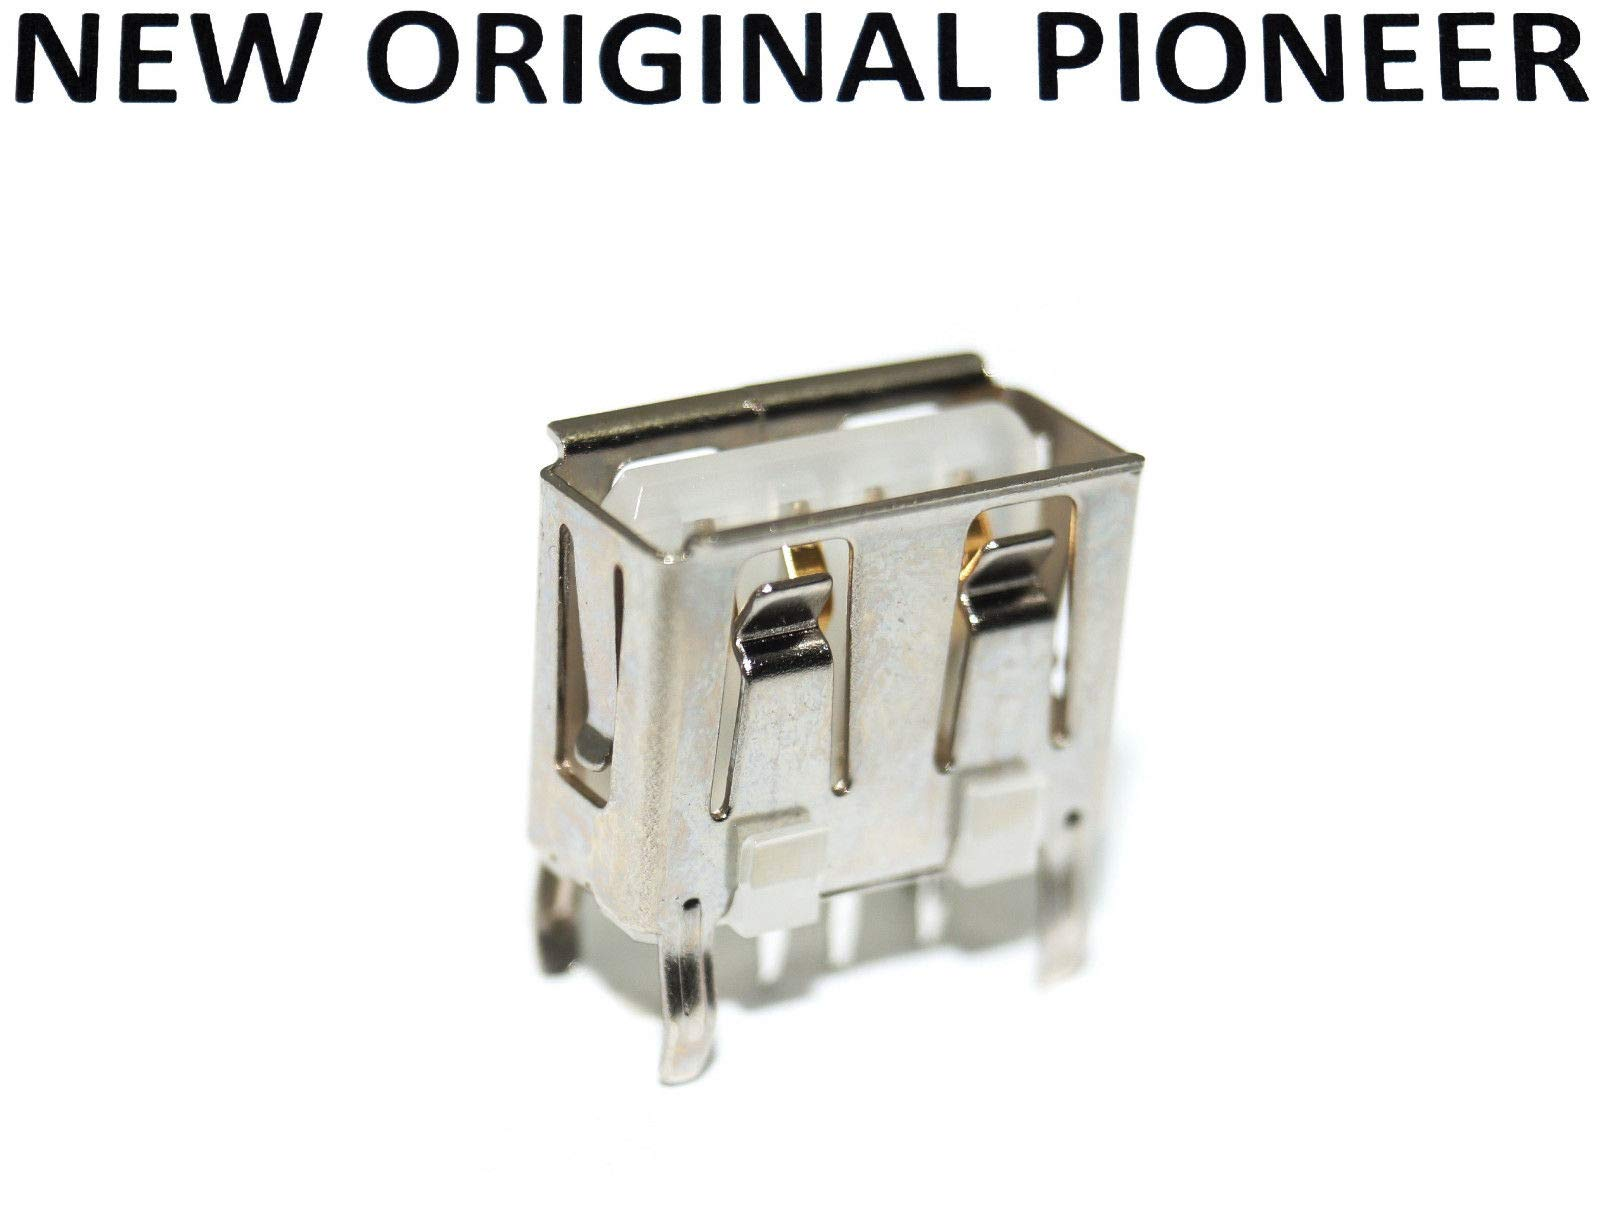 SERVICE_PARTS New USB Connector Unit CKS6443 for Pioneer CD RDS Receiver Media Center BD- DEH- FH- FXT- MVH- SPH-